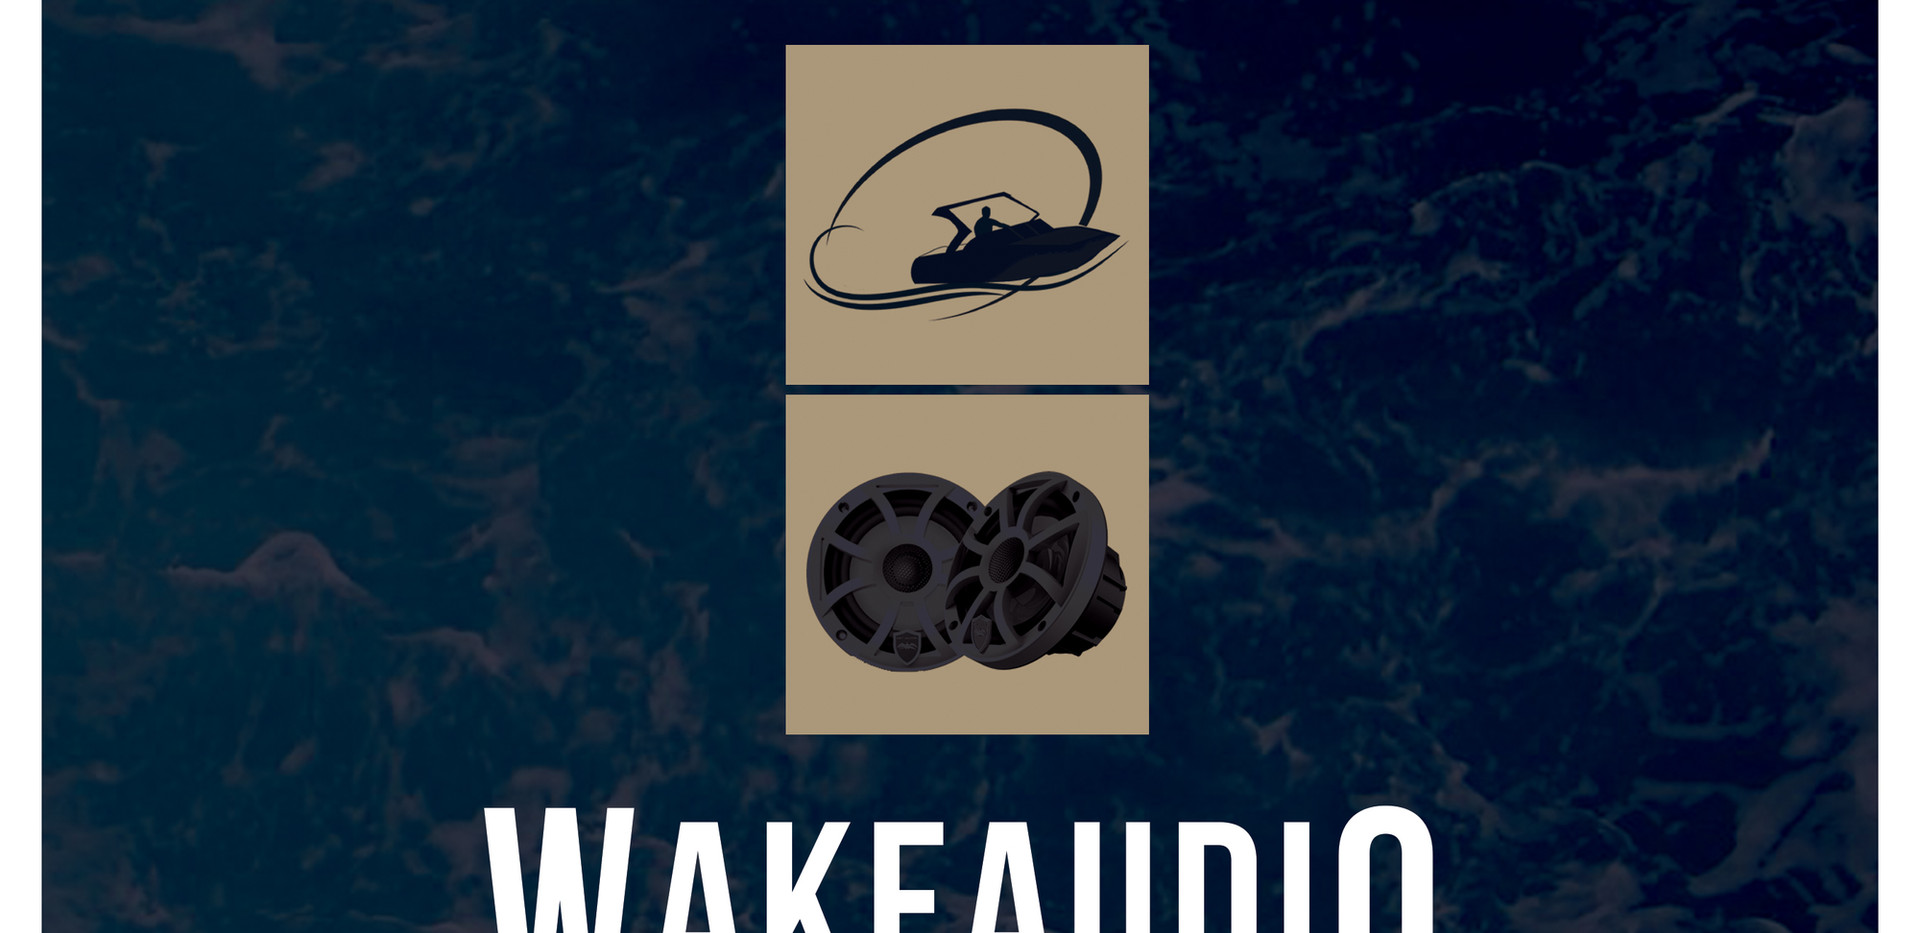 Wake Audio cover copy.jpeg